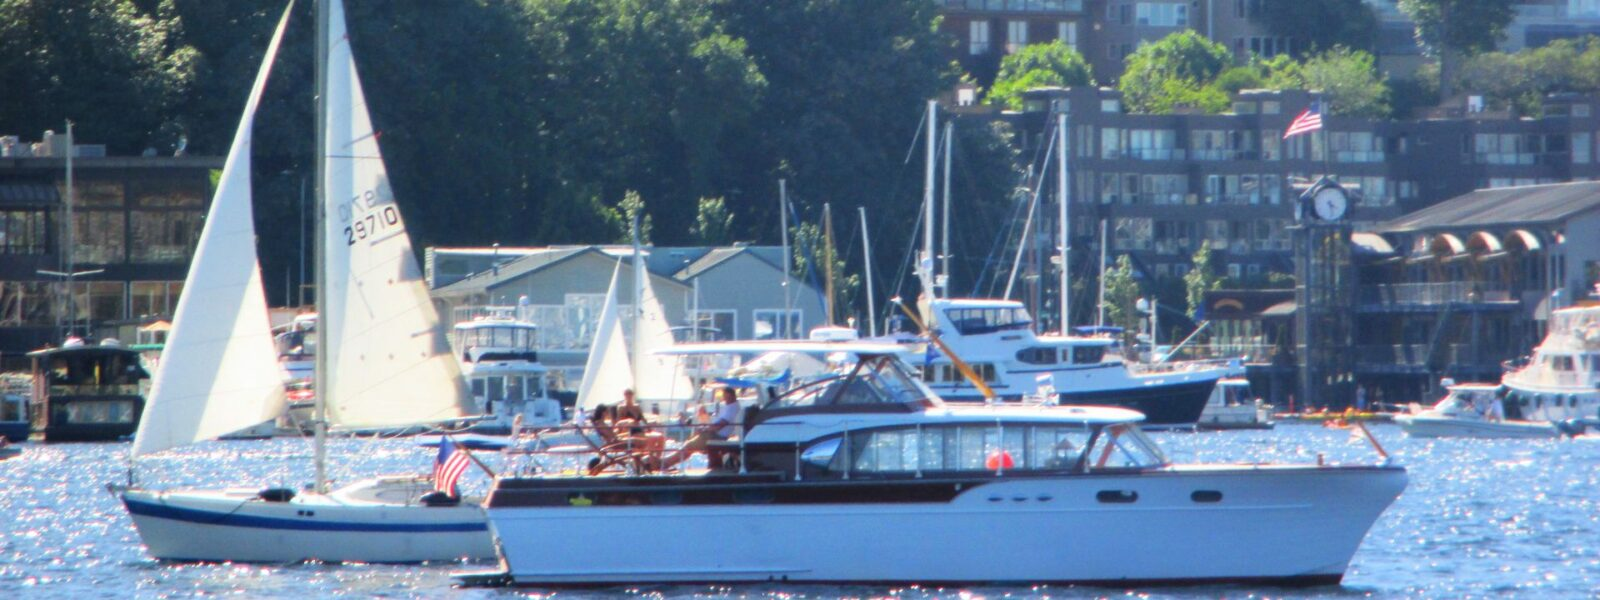 Seattle Easter Boat Parade, Yachts, Powerboats, Sailboats, Commercial Fishing, Kayaks, Tenders, Salty Dog Boating